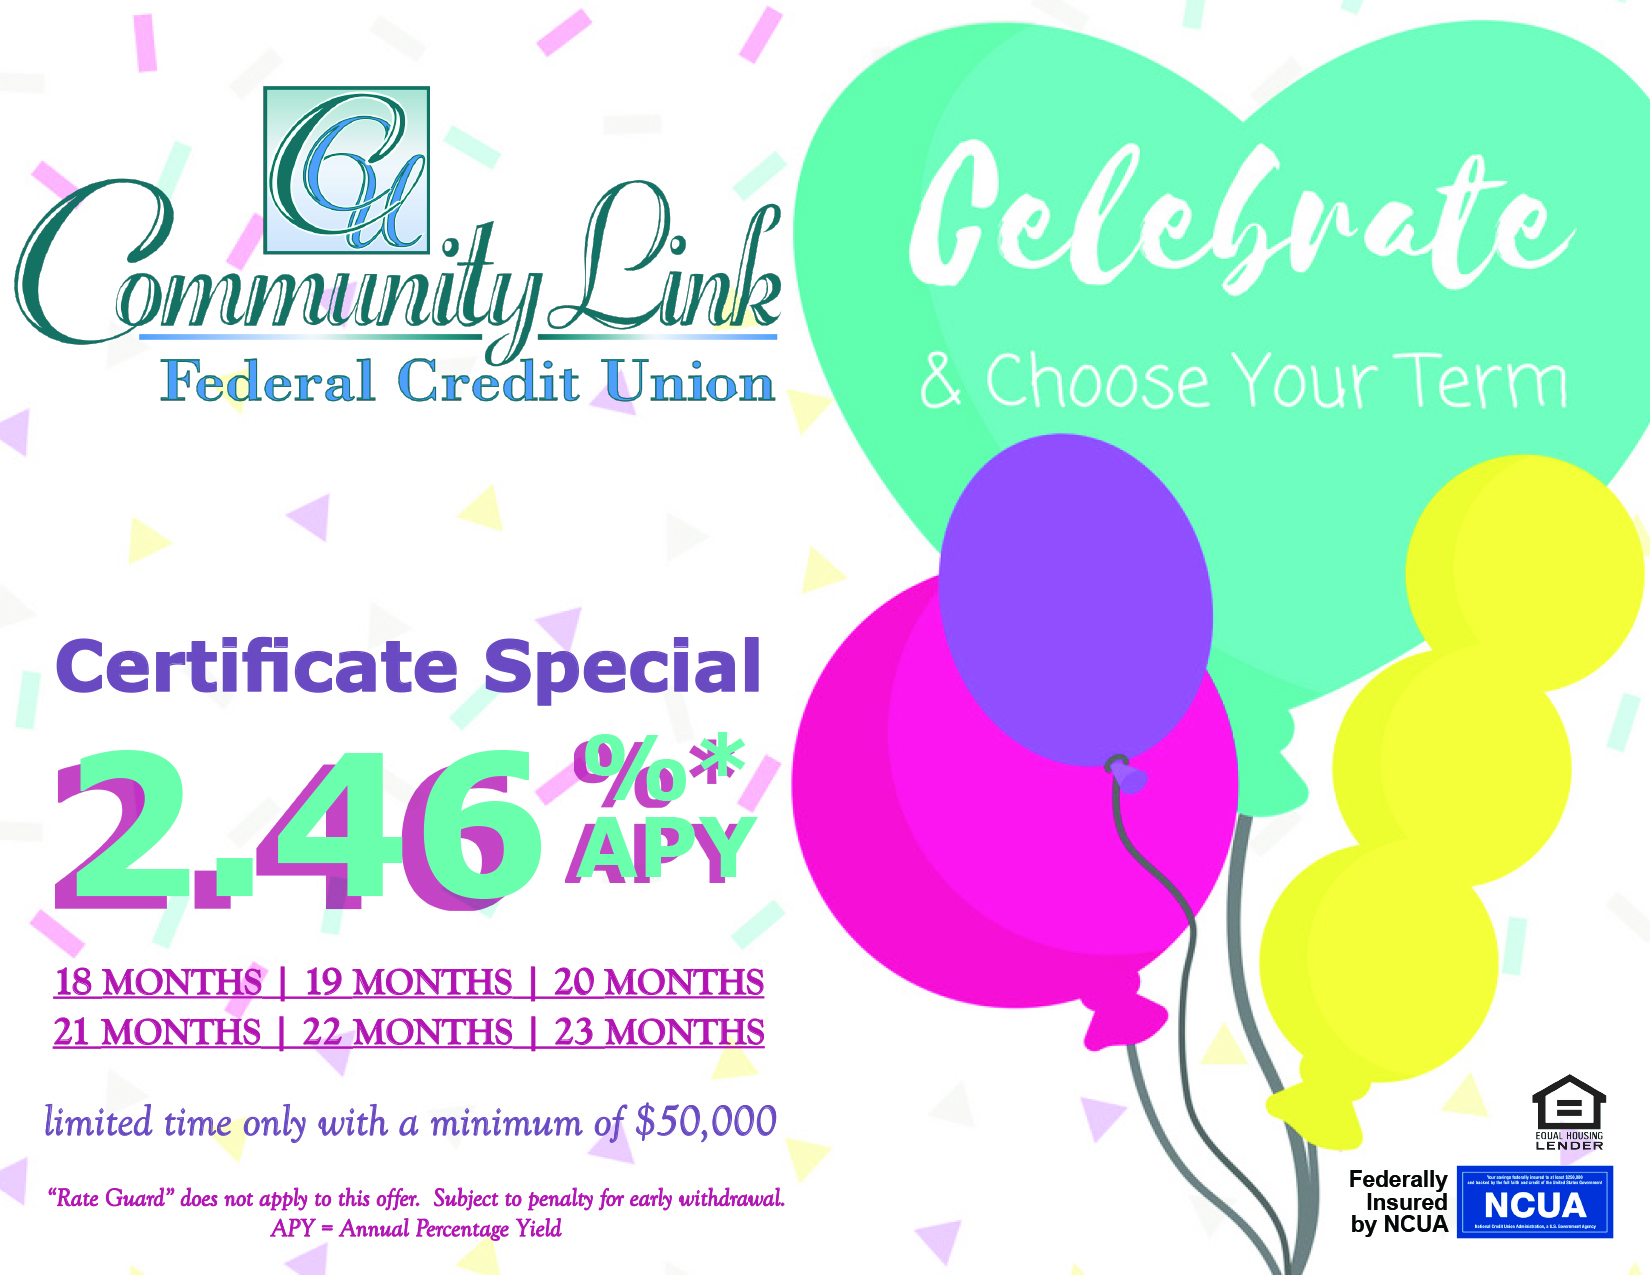 Balloons with confetti background. Ad states Celebrate & Choose your term. Limited Time Only, Certificate Special with a minimum of $50,000.